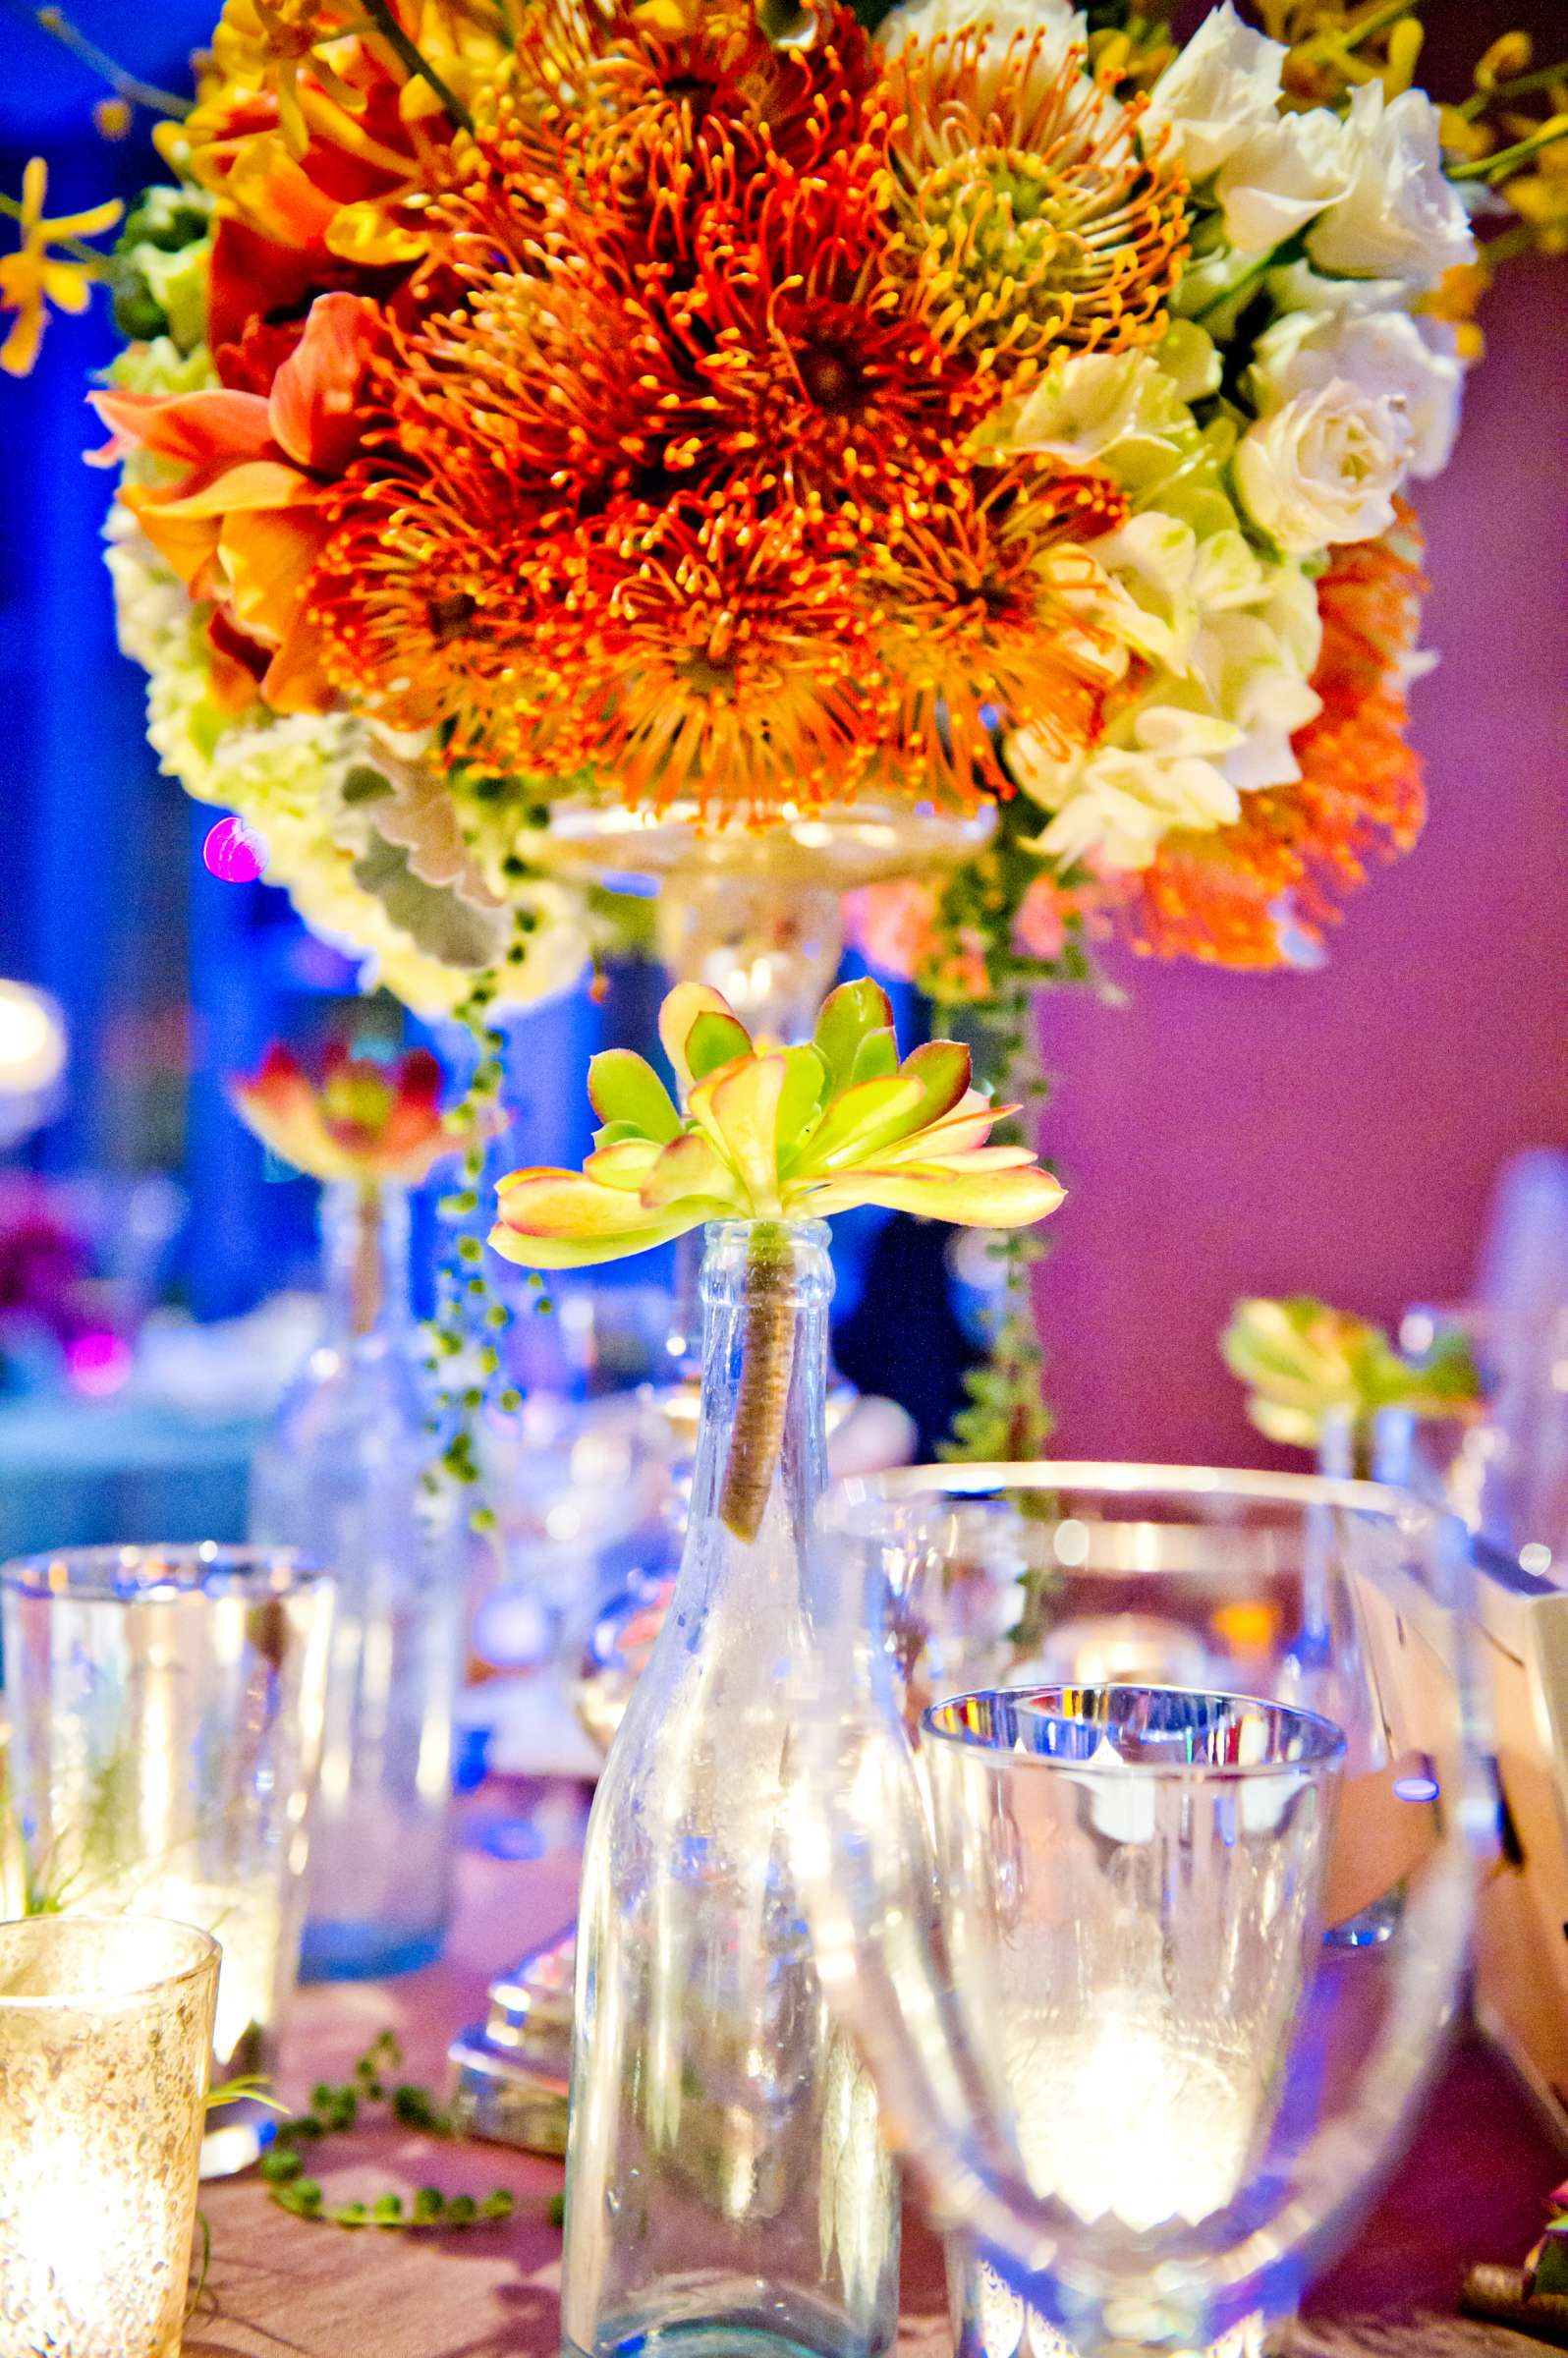 Ultimate Skybox Wedding coordinated by Creative Affairs Inc, Open House Wedding Photo #15 by True Photography